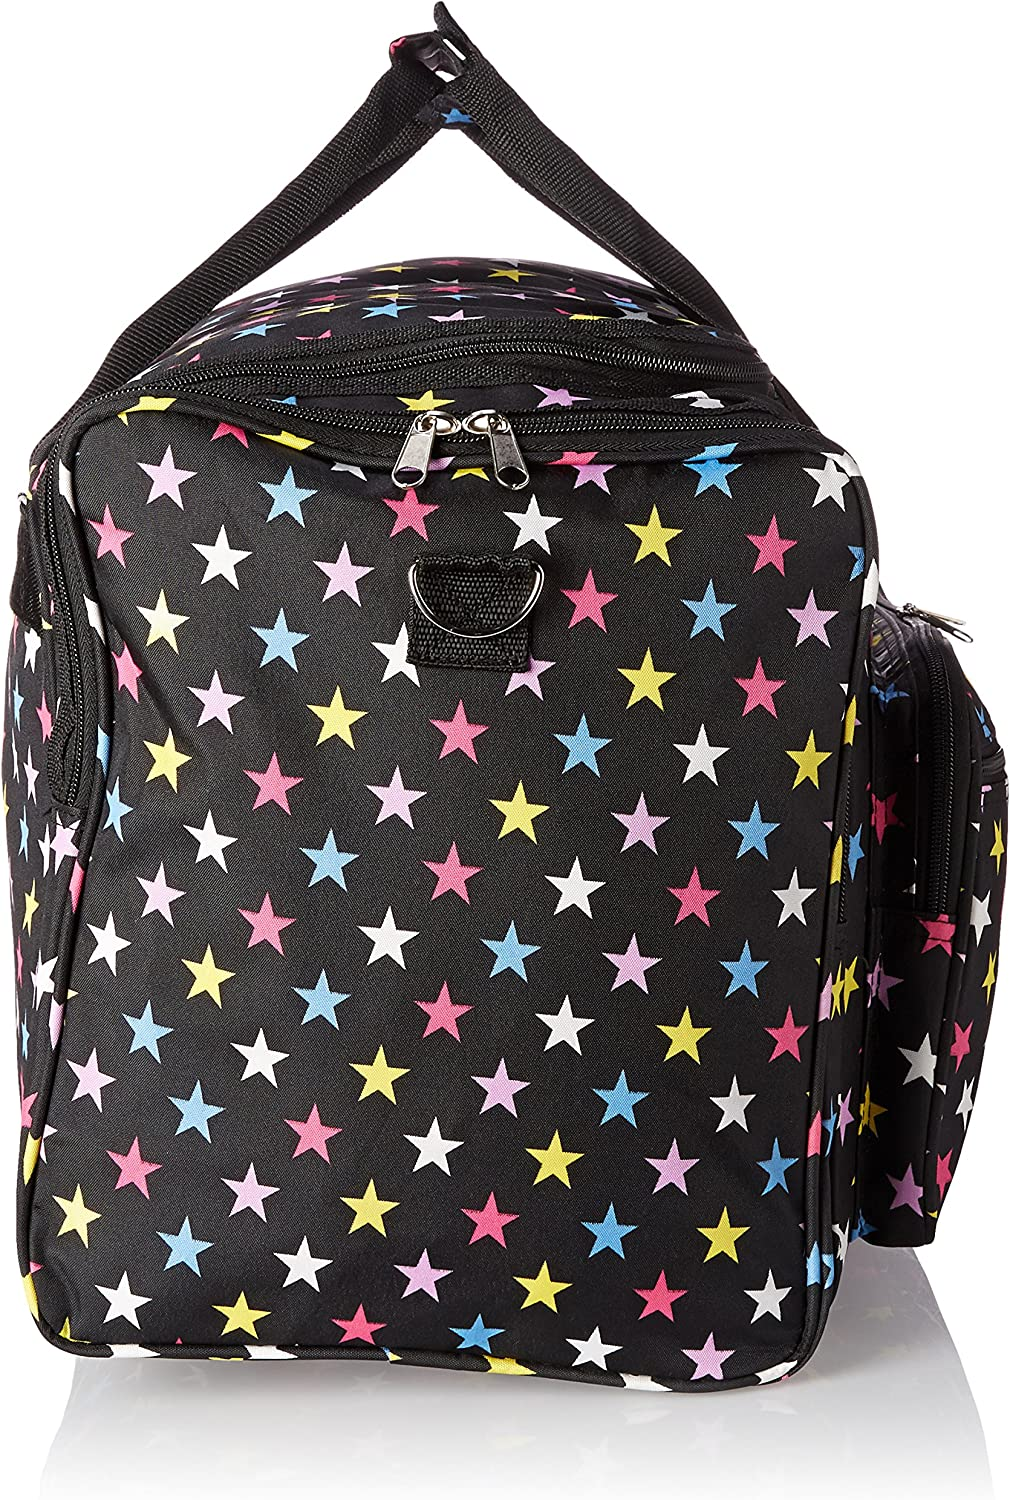 Fuchsia Trim Giraffe World Traveler 22 Inch Duffle Bag